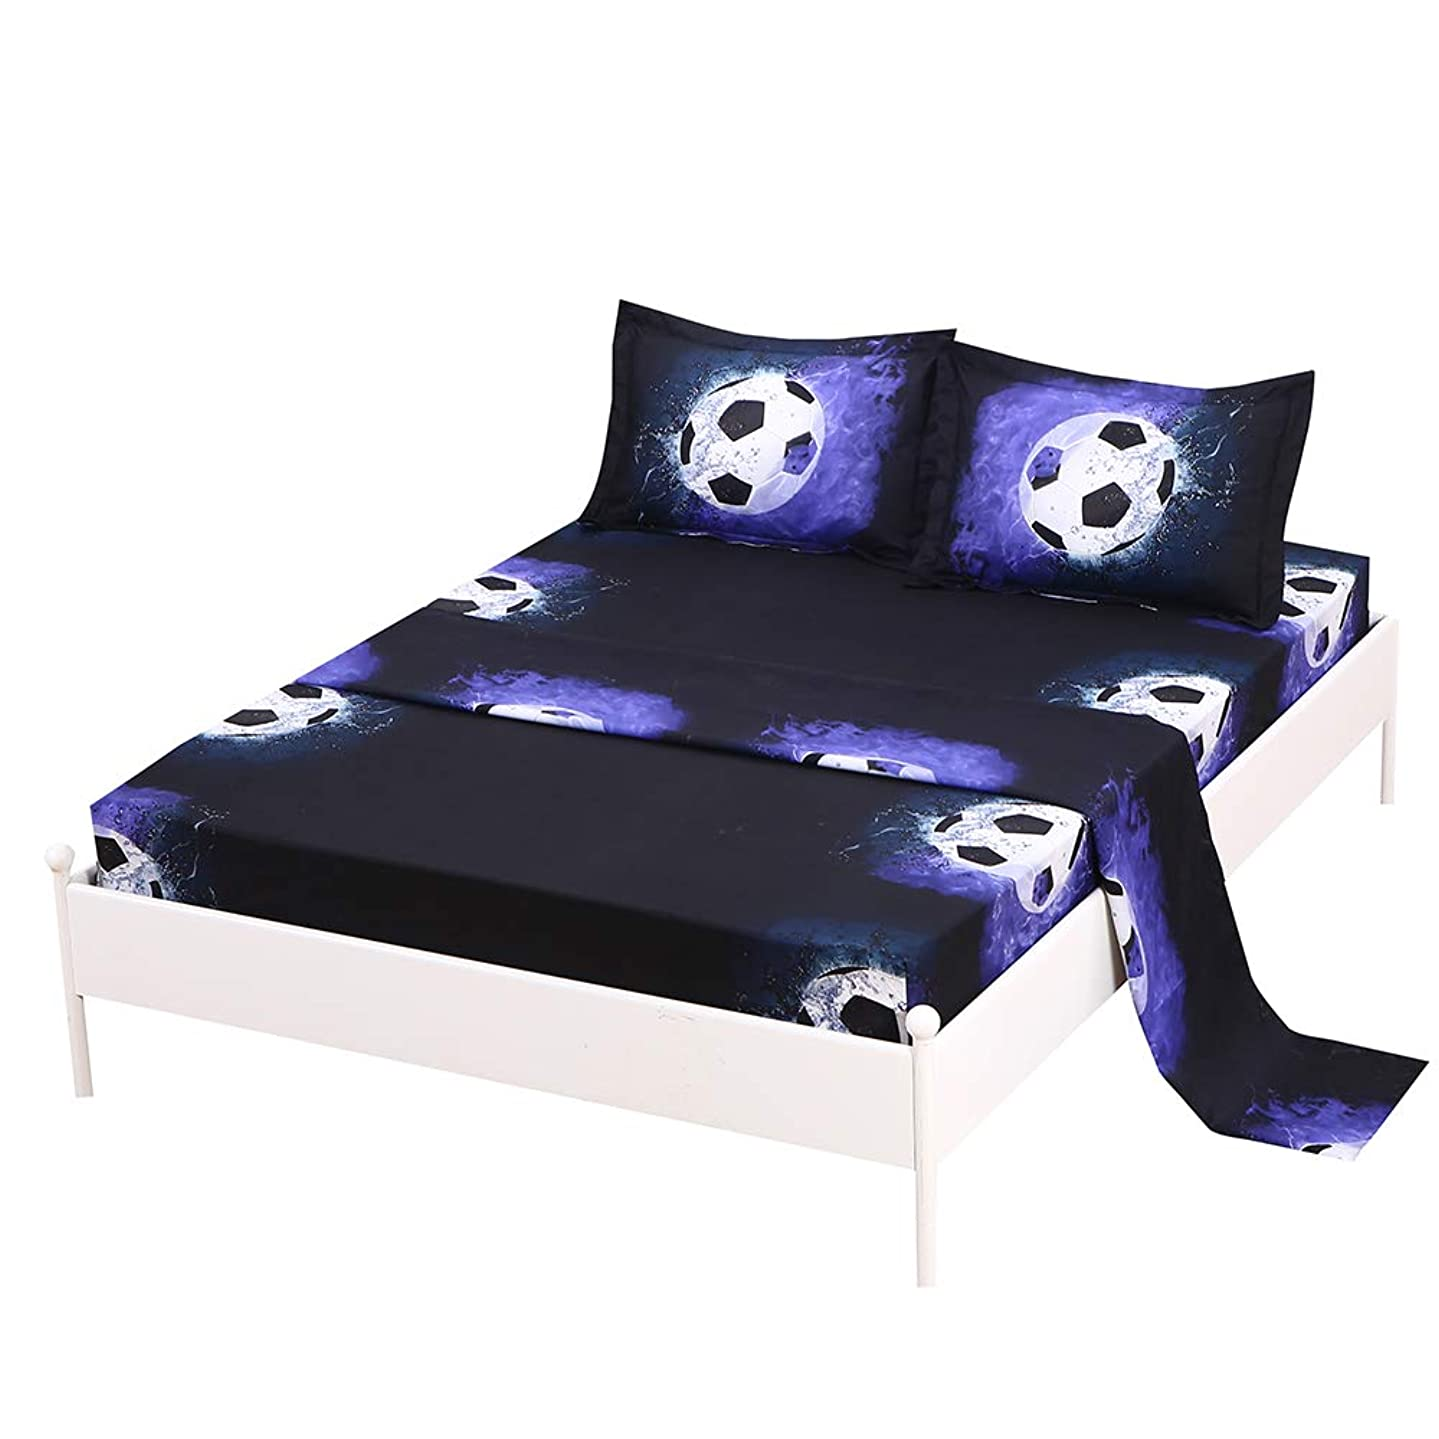 SDIII 4PC Football Bed Sheets Queen Size Sport Bedding Sheet Sets with Flat Fitted Sheet for Boys, Girls and Kids